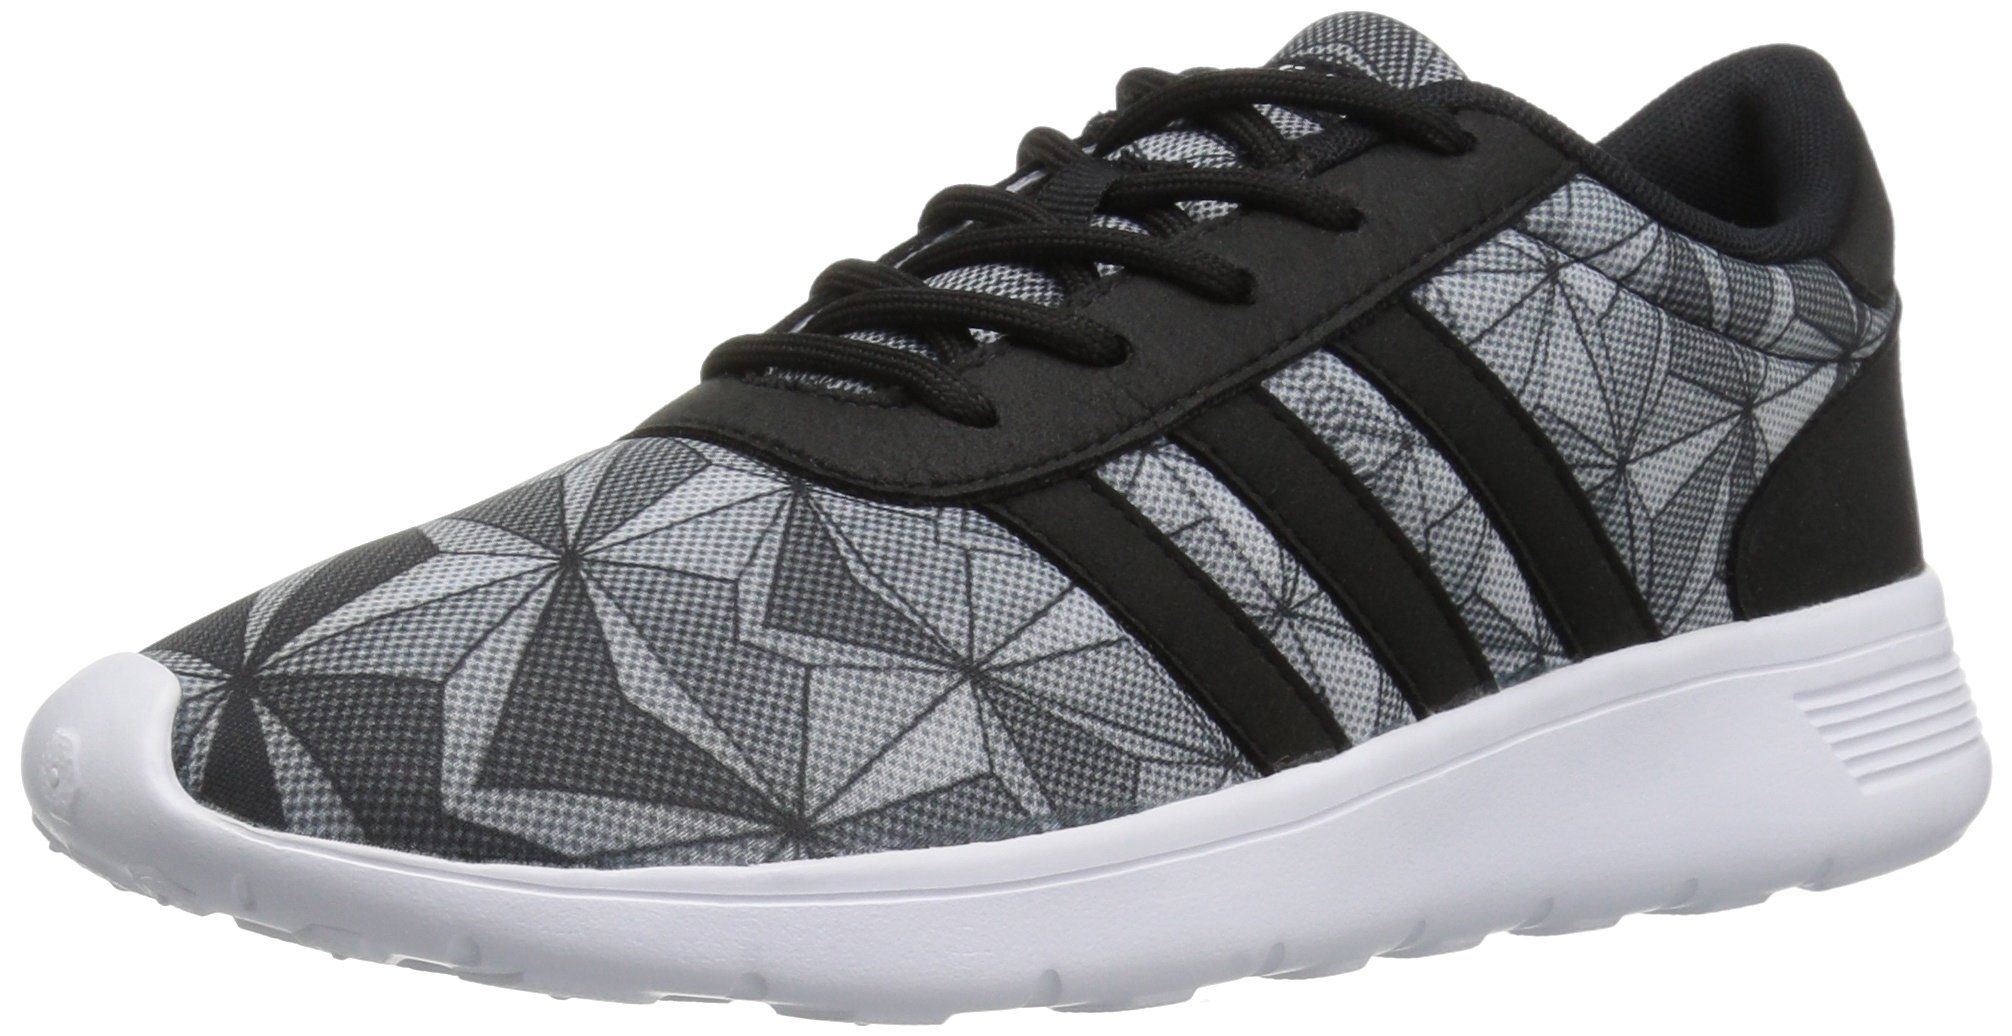 low priced e2087 f9aa7 ... canada adidas neo womens lite racer w running shoe black white black 8  7f136 a3ad3